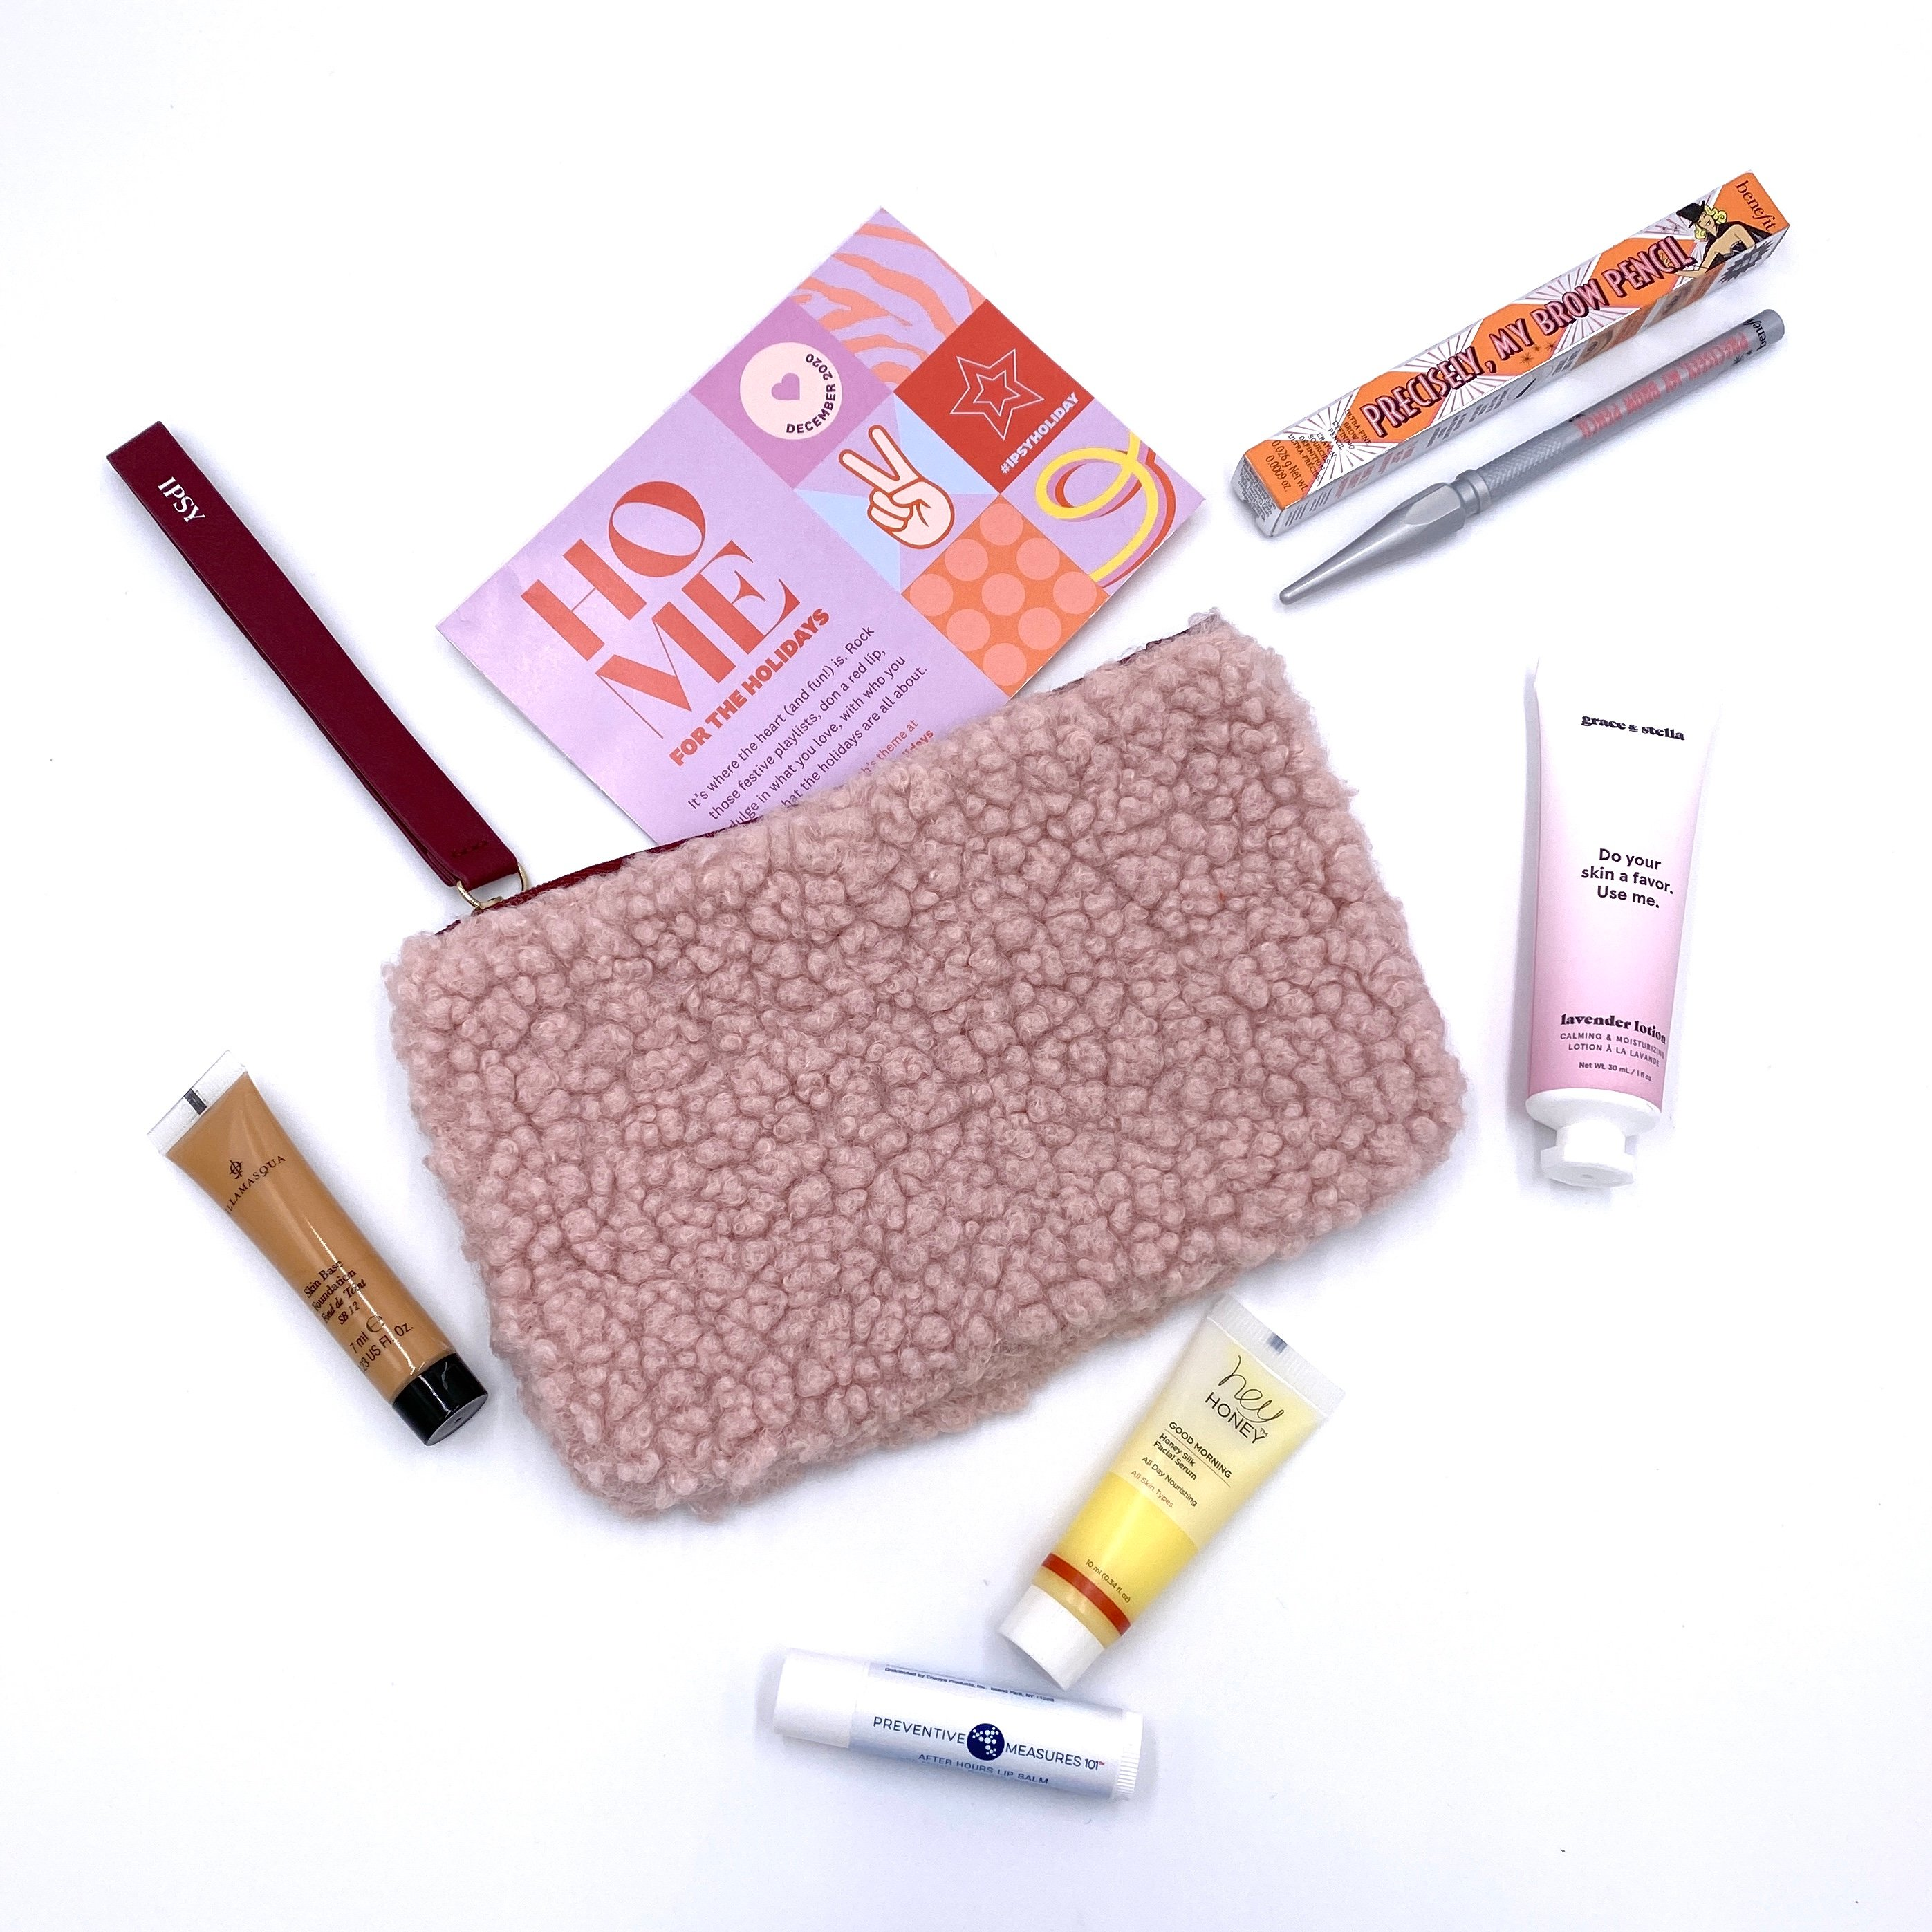 Full Contents for the Ipsy Glam Bag December 2020